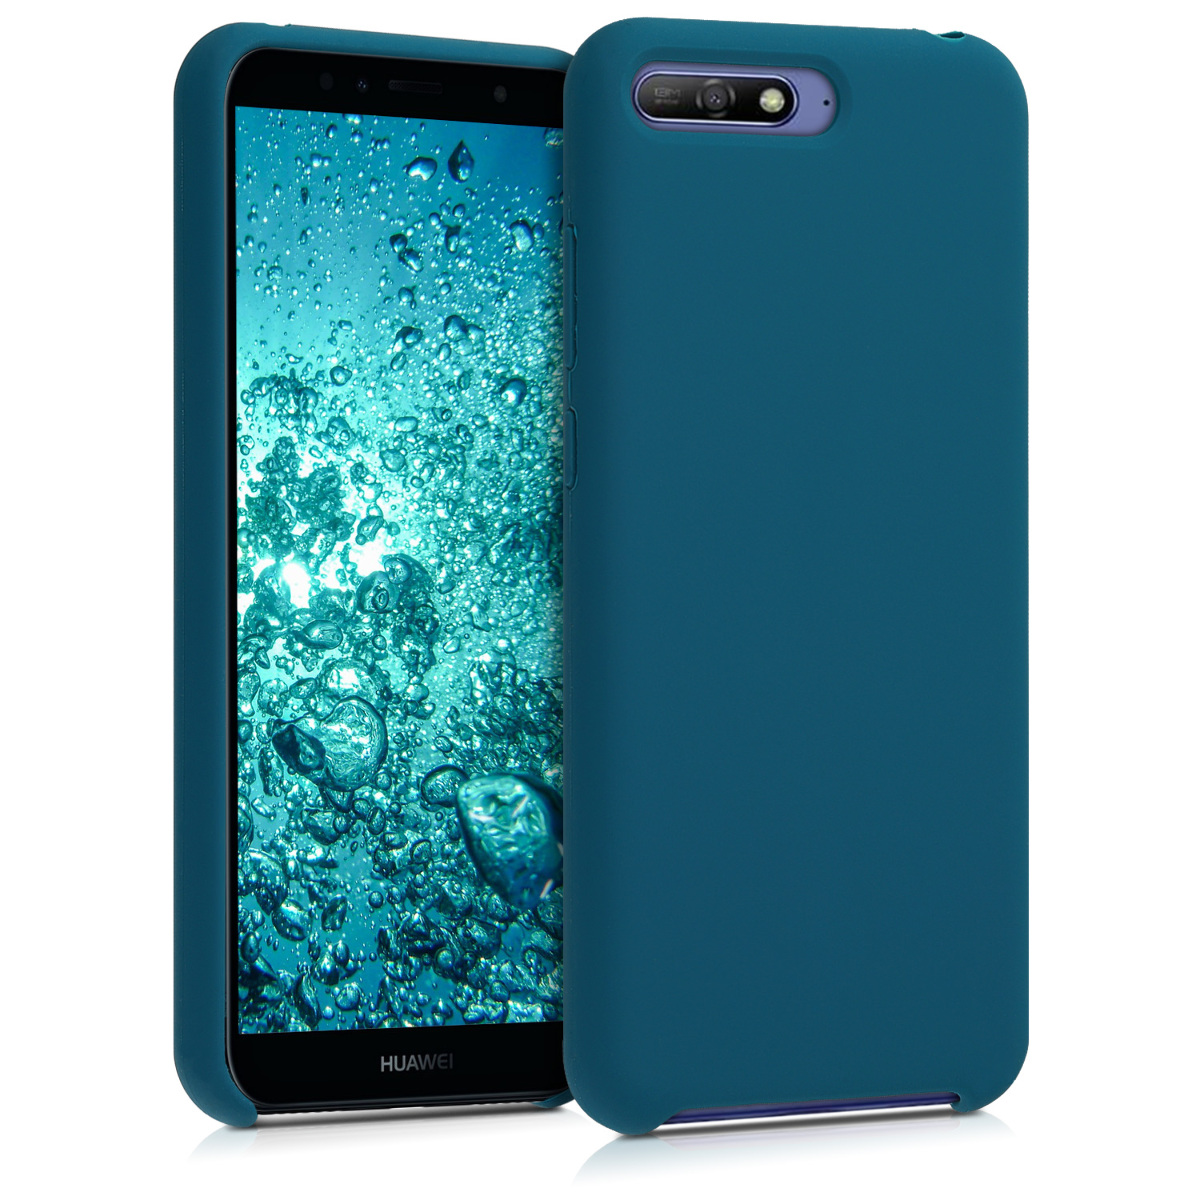 KW Θήκη Σιλικόνης Huawei Y6 (2018) - Soft Flexible Rubber Protective Cover - Teal Matte - (46898.57)